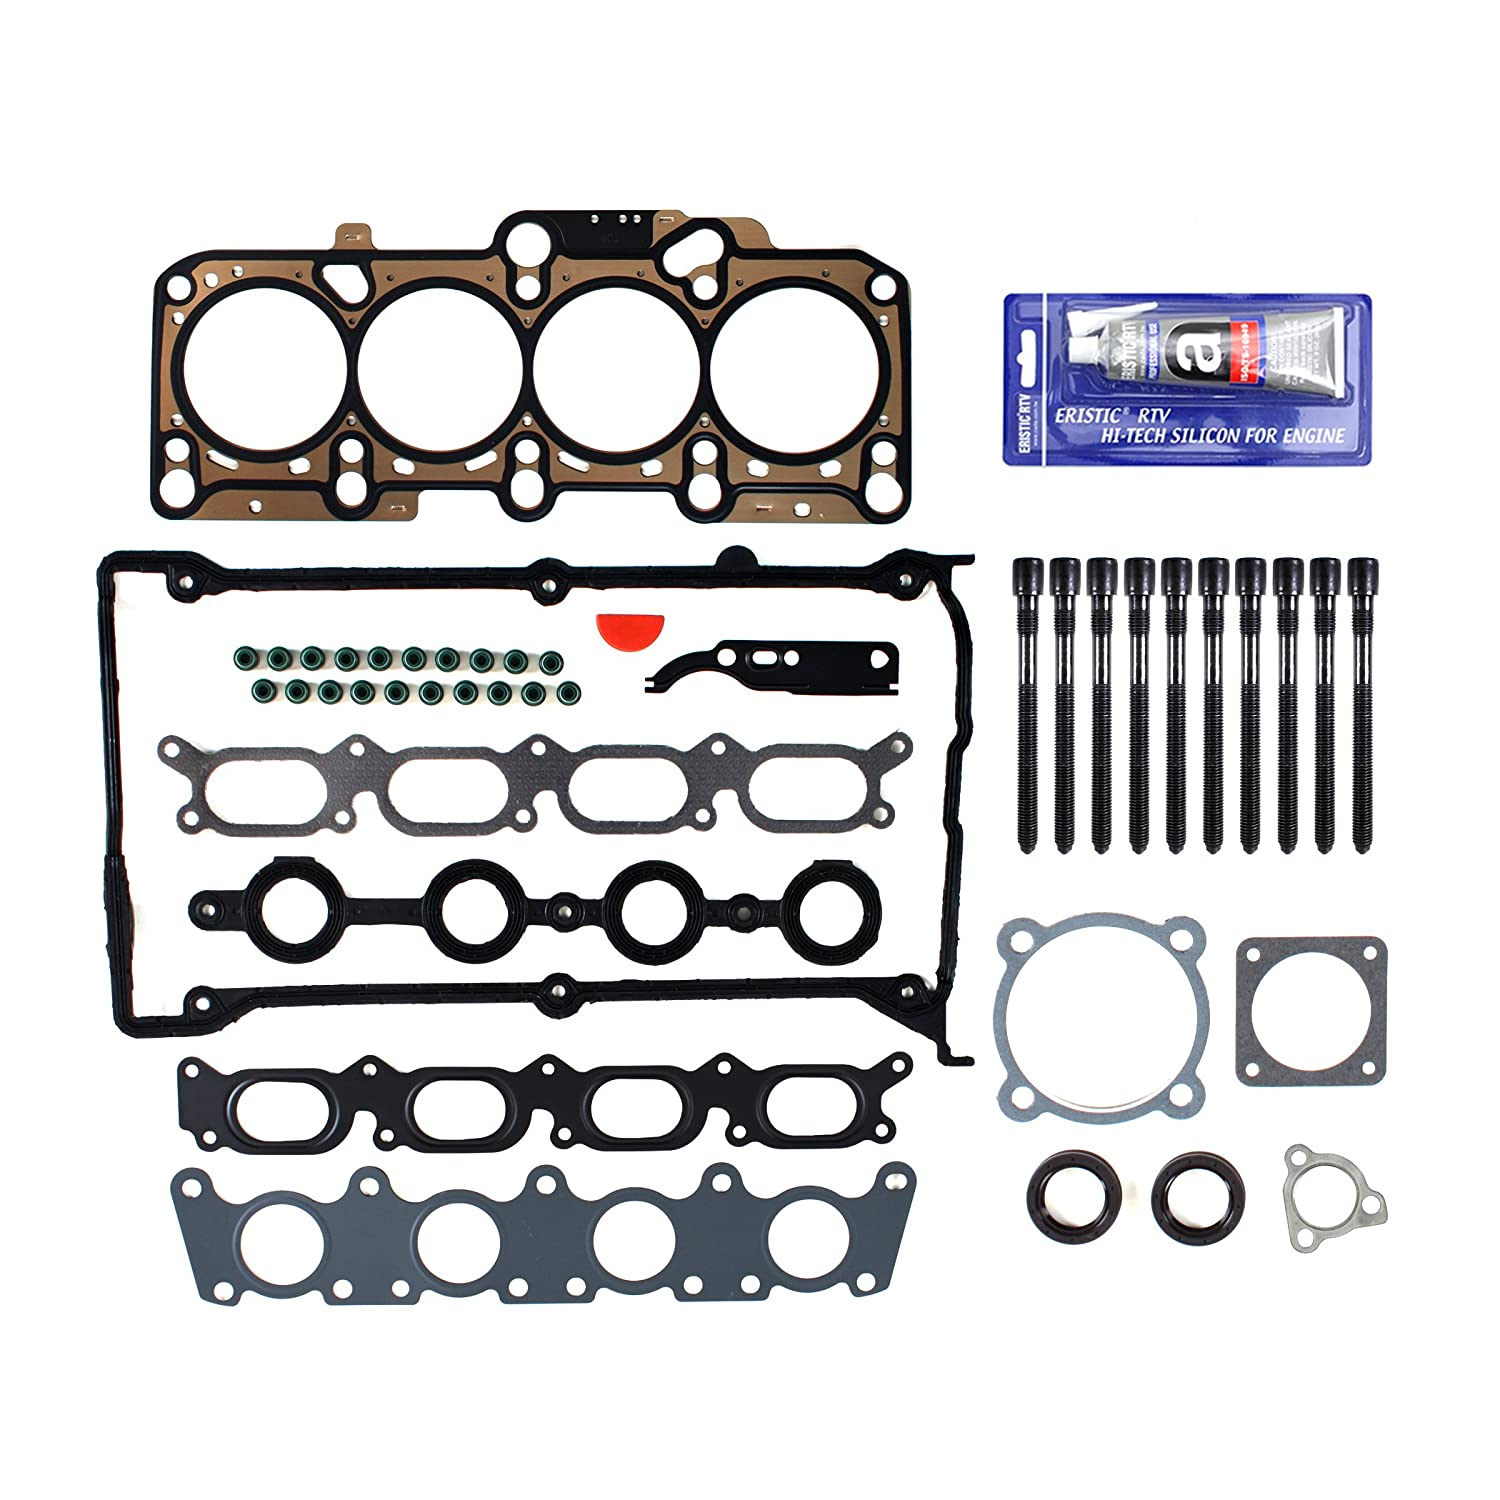 New EH1652X1HBSI-1 Cylinder Head Gasket Set, RTV Silicone, & (136mm) Head Bolt Kit by CNS EngineParts: Amazon.es: Coche y moto